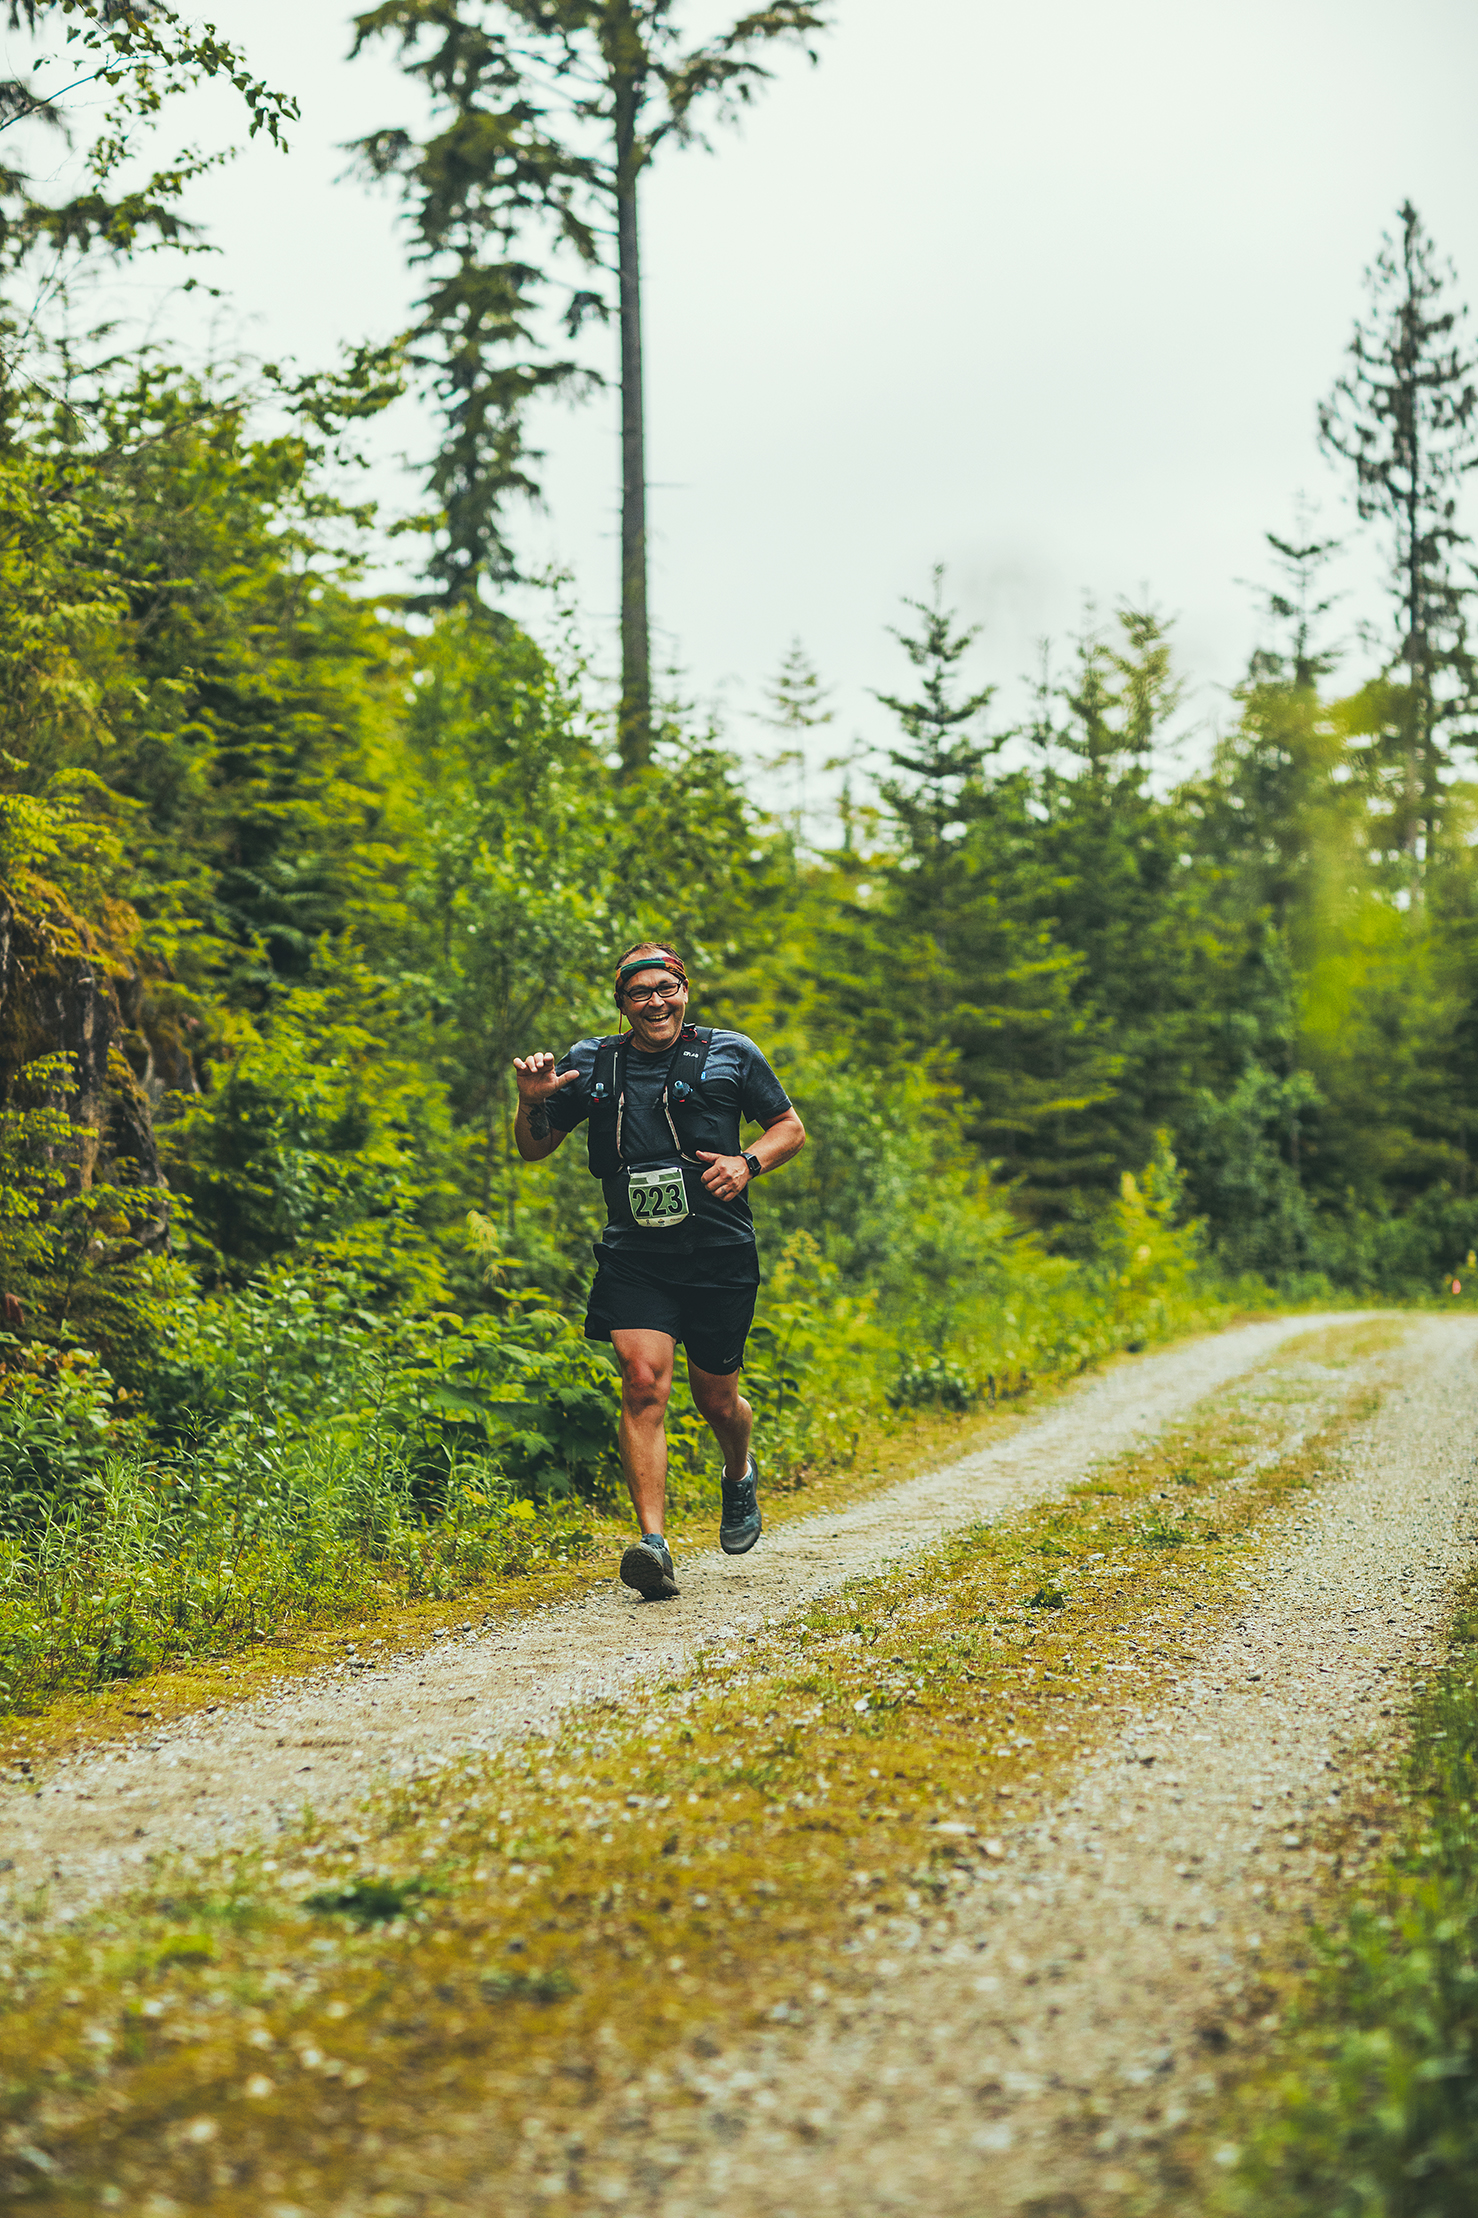 Fraser Valley Trail Races - Bear Mountain - IMG_1744 by Brice Ferre Studio - Vancouver Portrait Adventure and Athlete Photographer.jpg